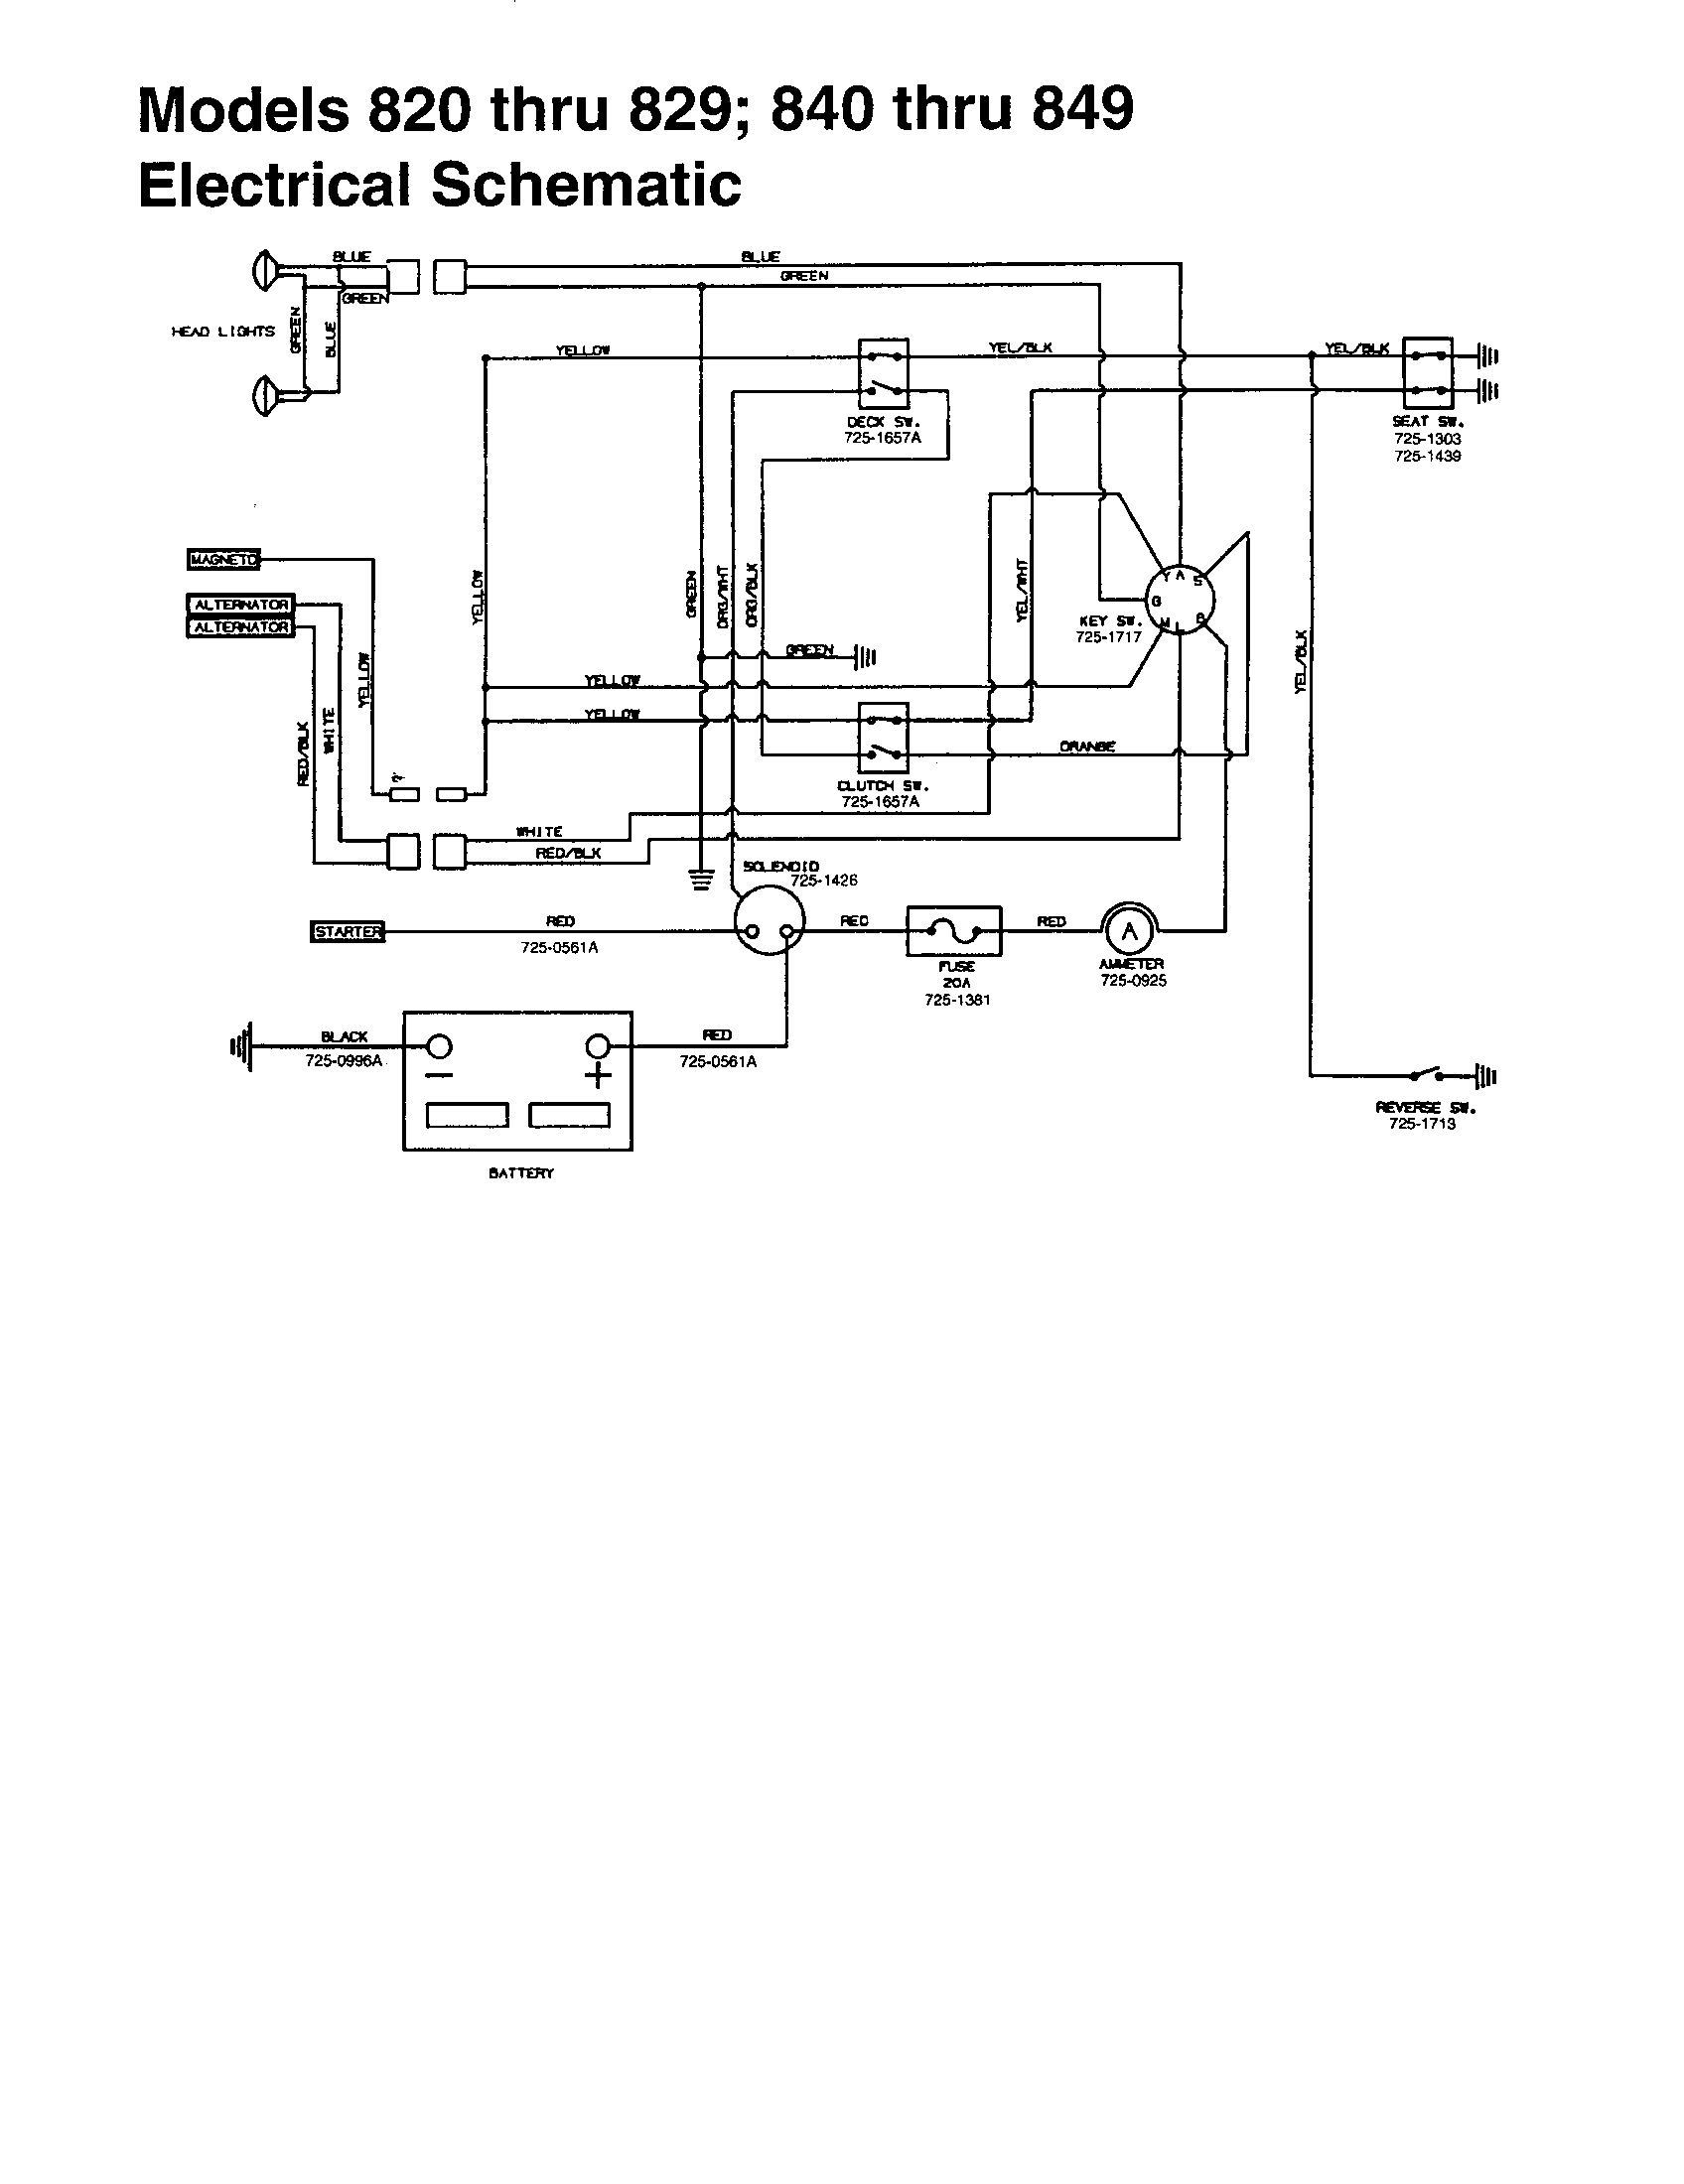 hight resolution of mtd 840 thru 849 electrical schematic diagram